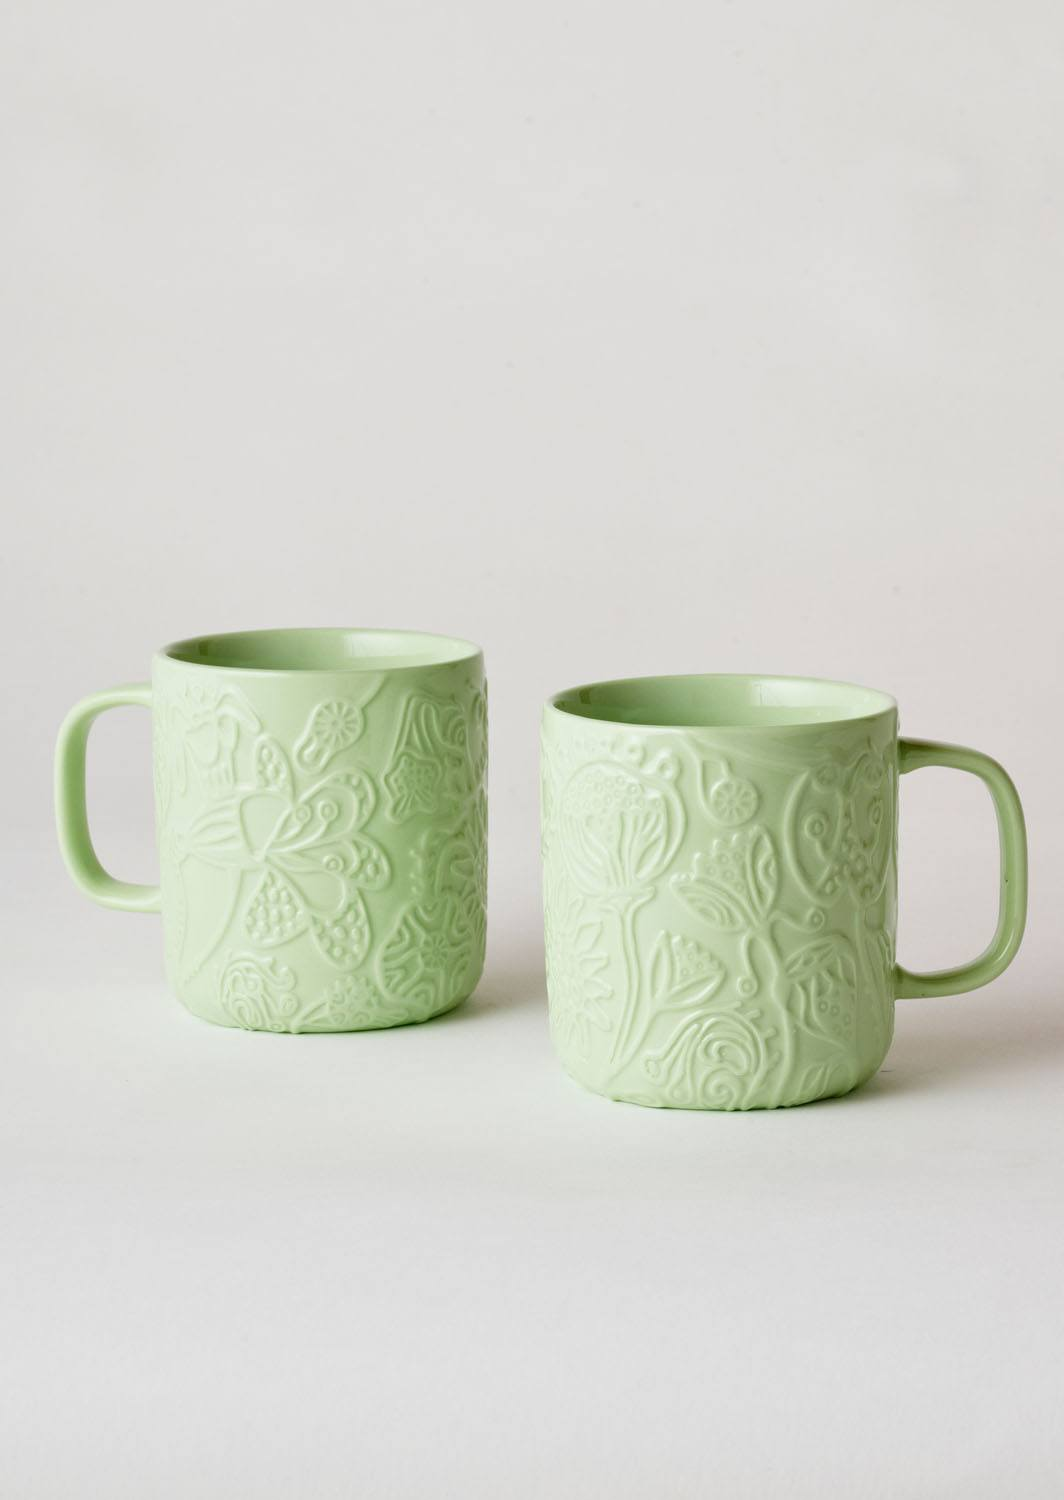 Angus & Celeste Imaginary Botanical Mugs Green Pair